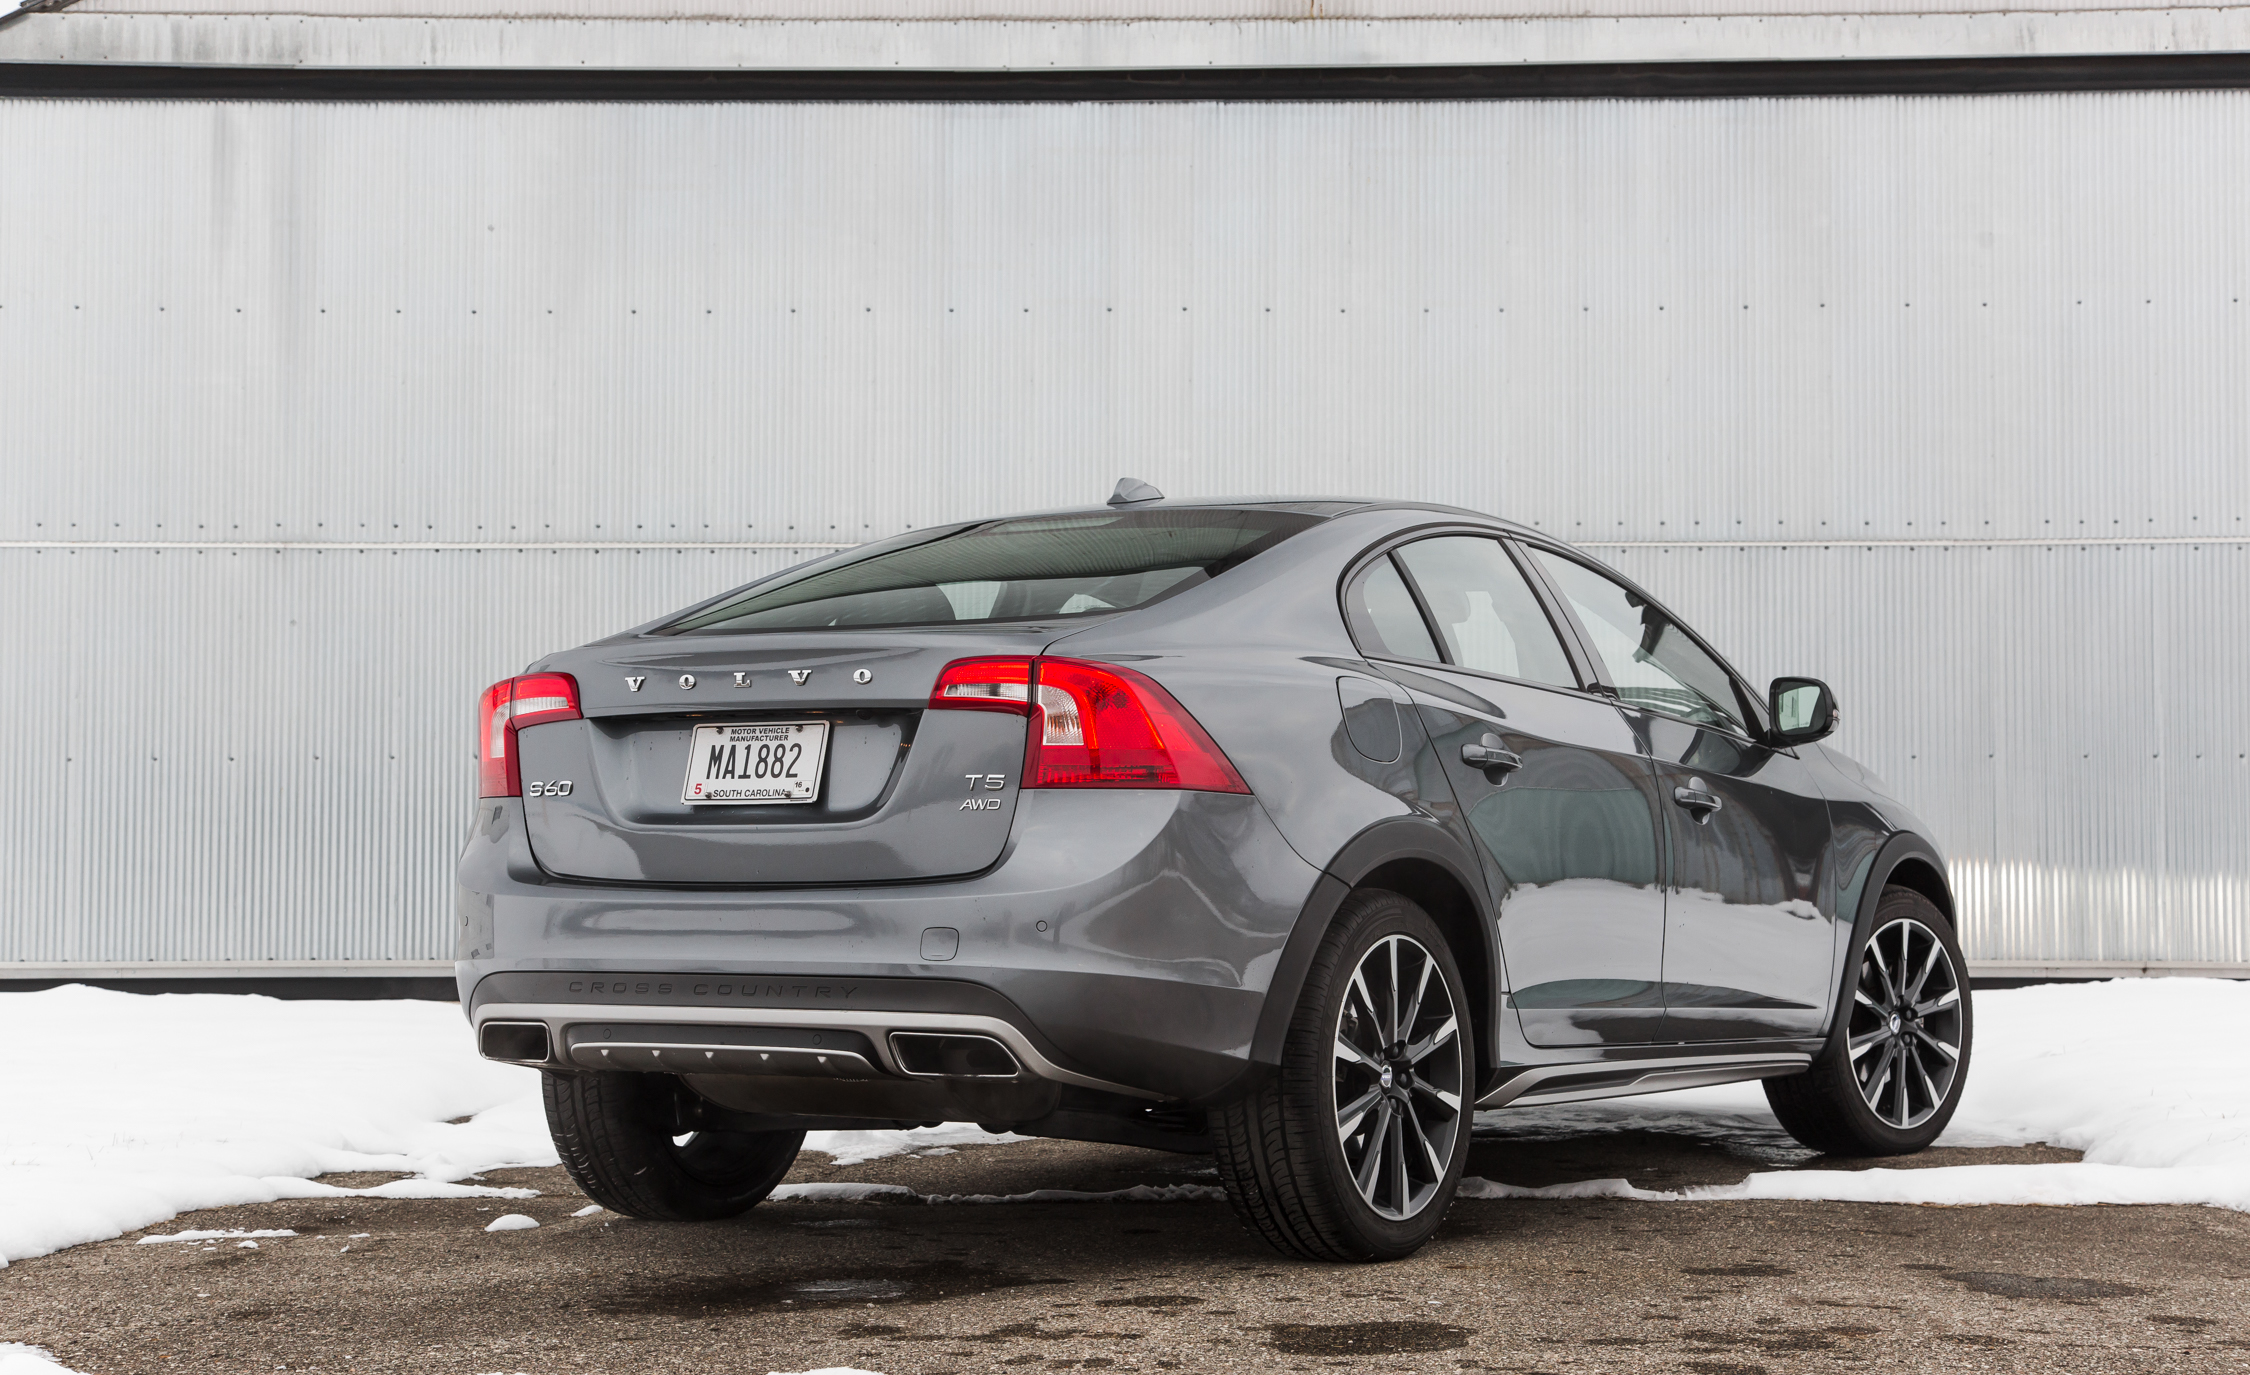 2016 Volvo S60 Cross Country Exterior Full Rear And Side (Photo 5 of 21)